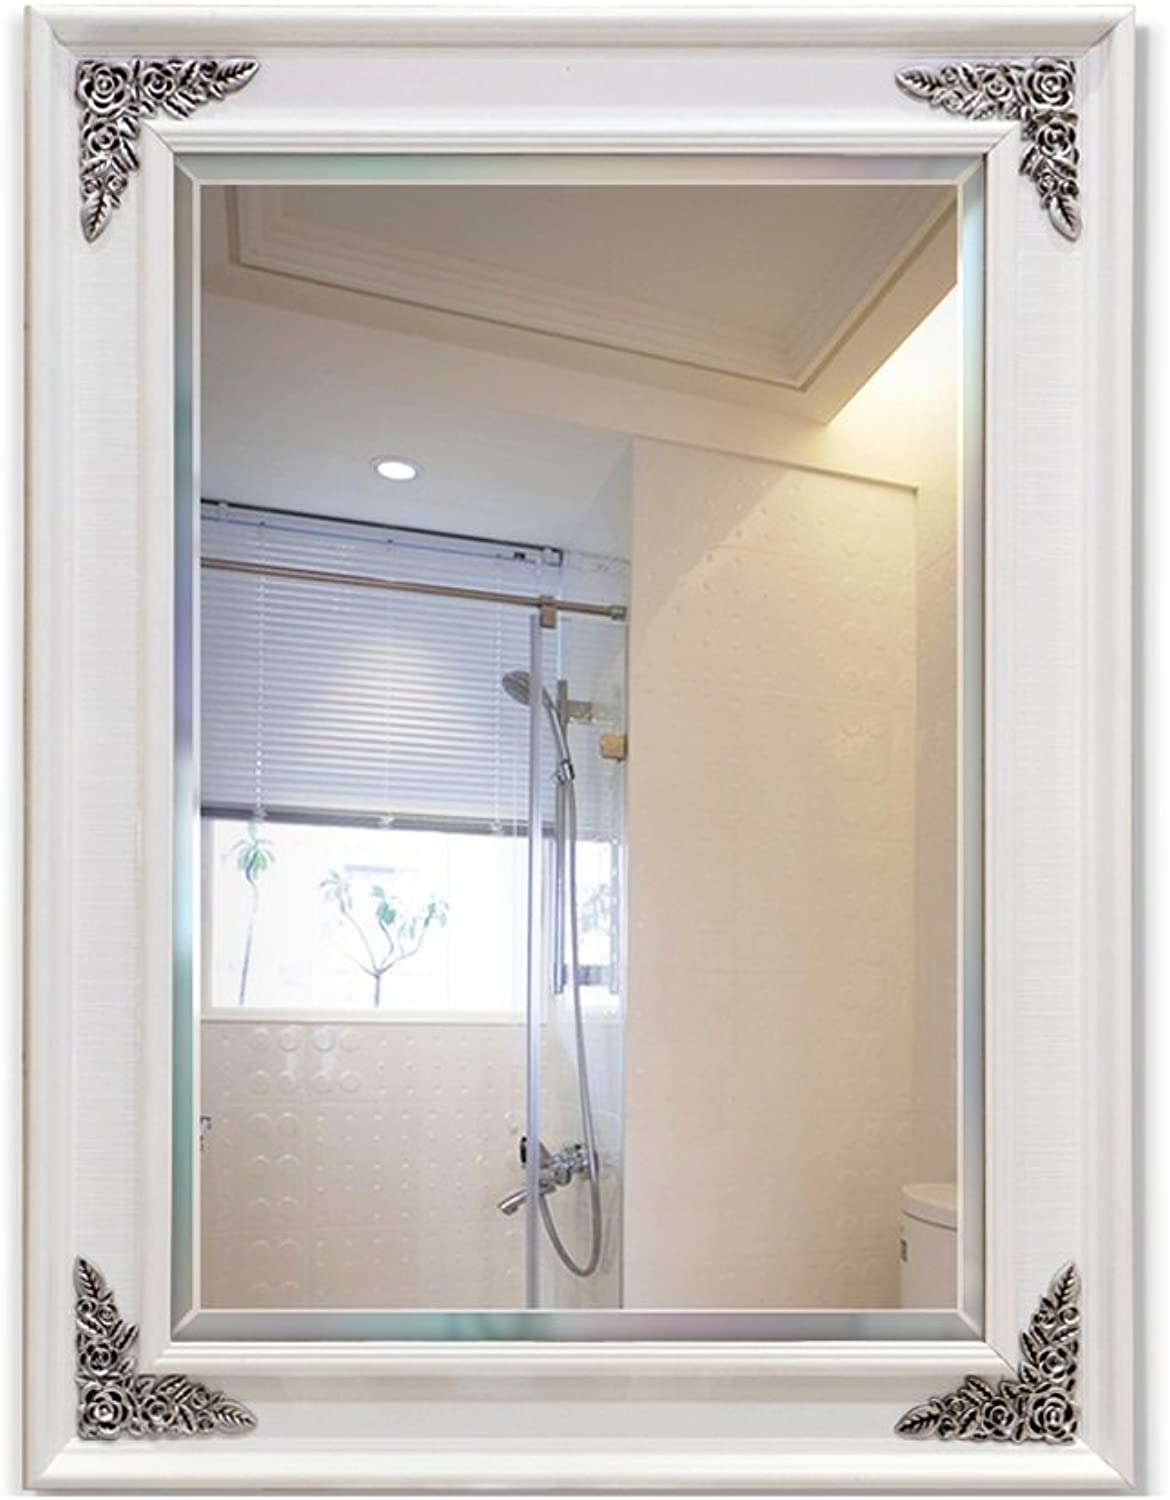 Lxn Wall-Mounted Square Plastic Bathroom Mirror Dressing Mirror Toilet Mirror (Size   50  70CM)